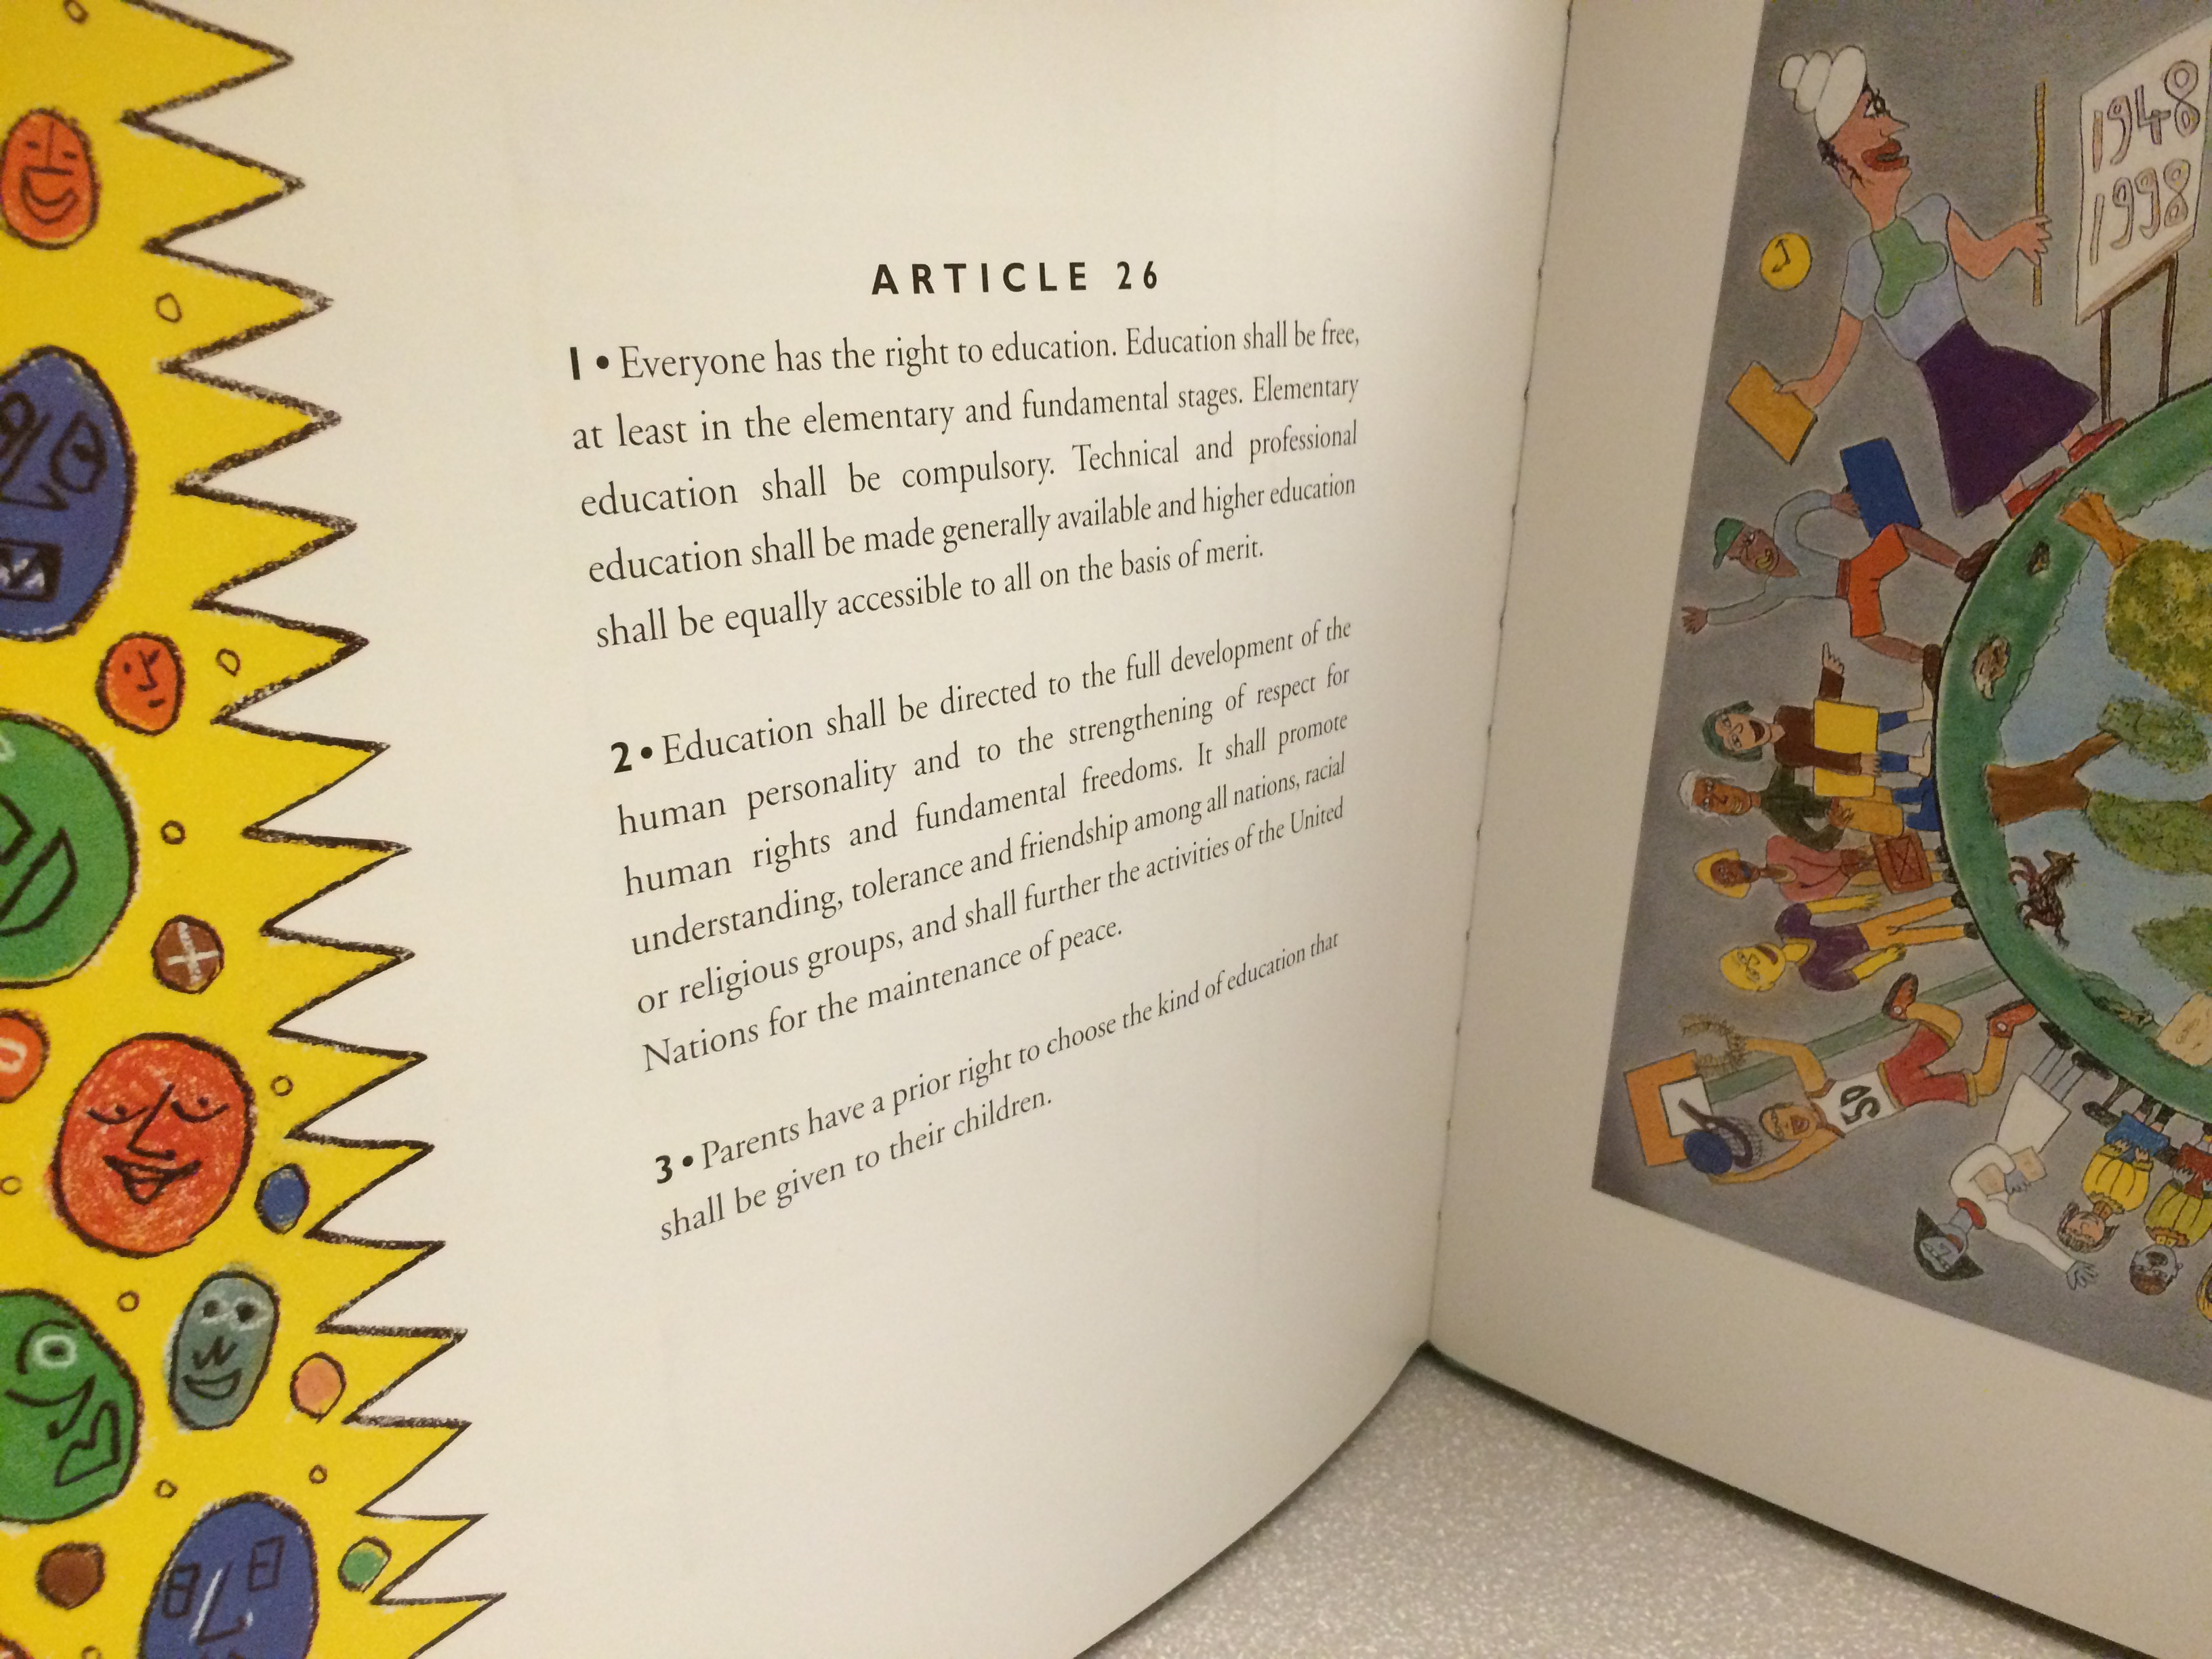 852 rare colorful collections picture books in historical universal declaration of human rights illustrated by william wilson